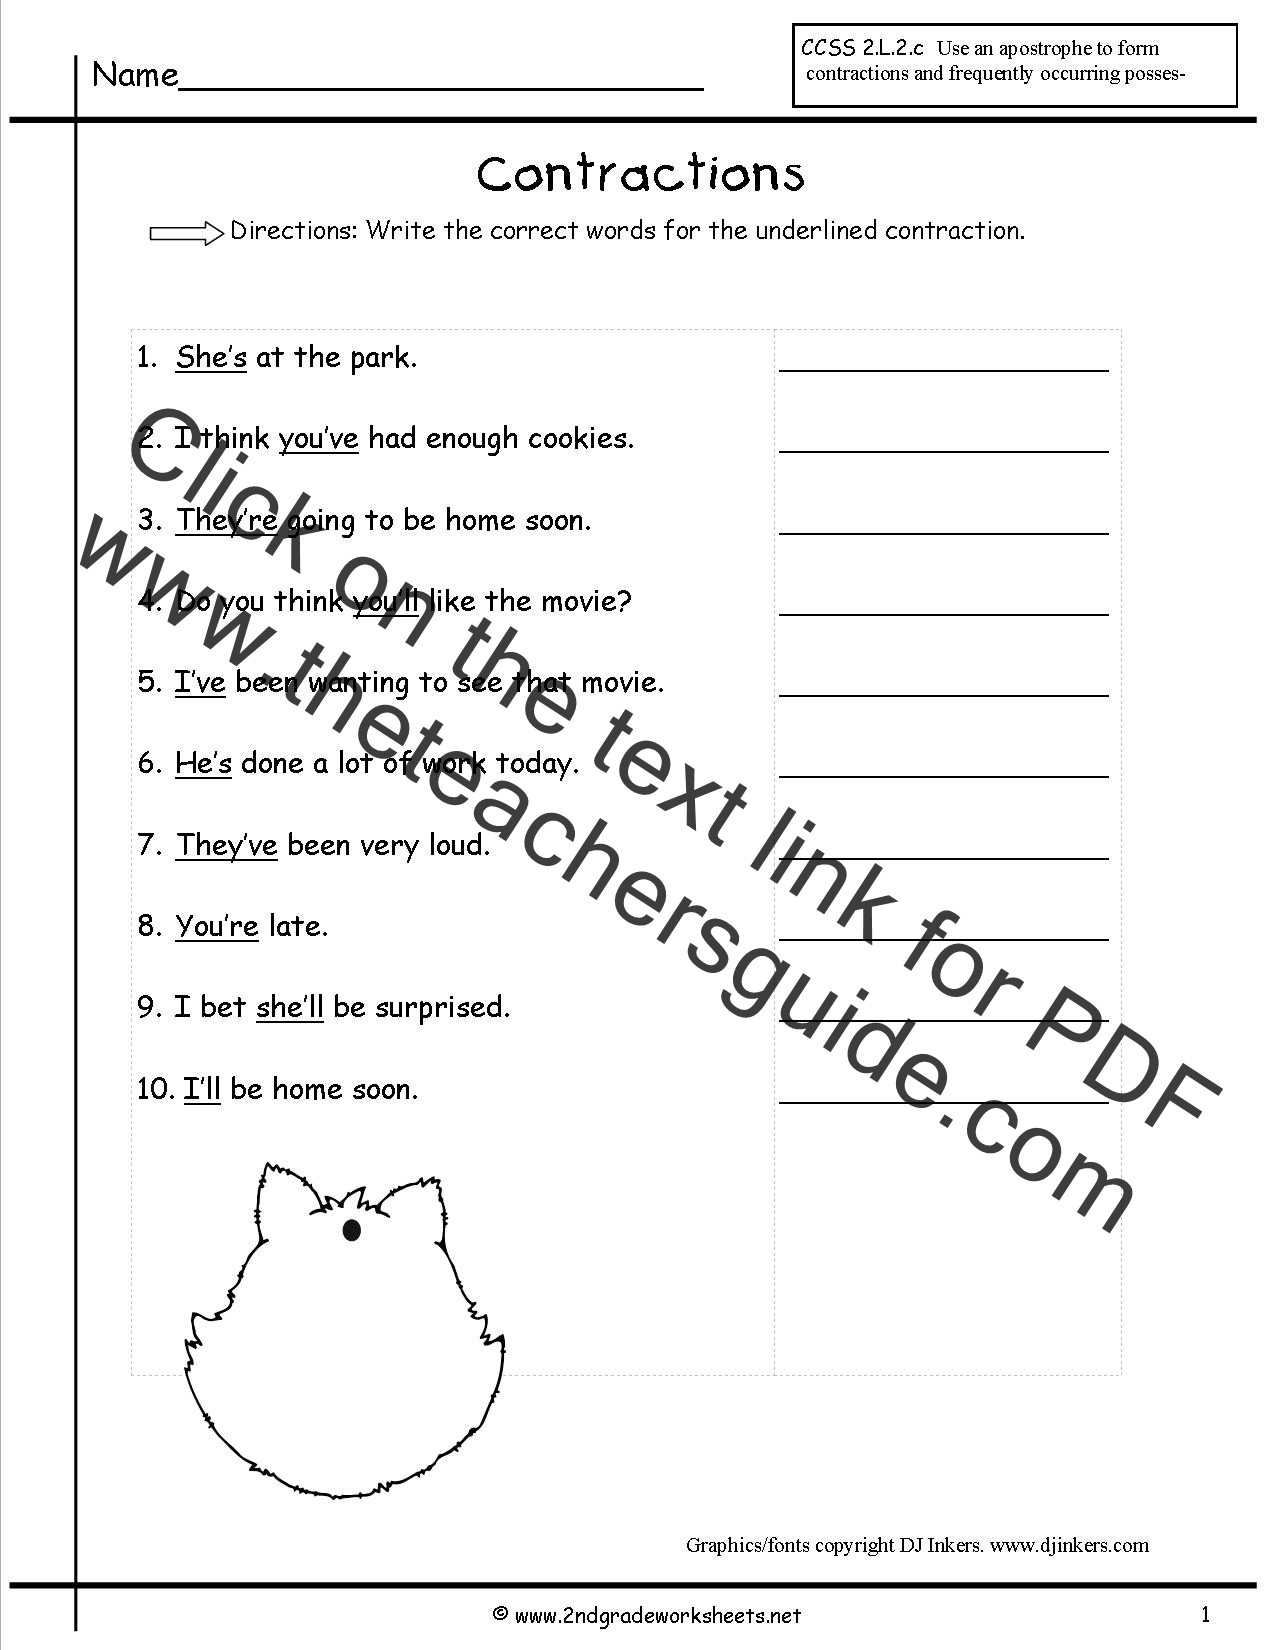 Contractions Worksheet 2nd Grade Free Contractions Worksheets and Printouts